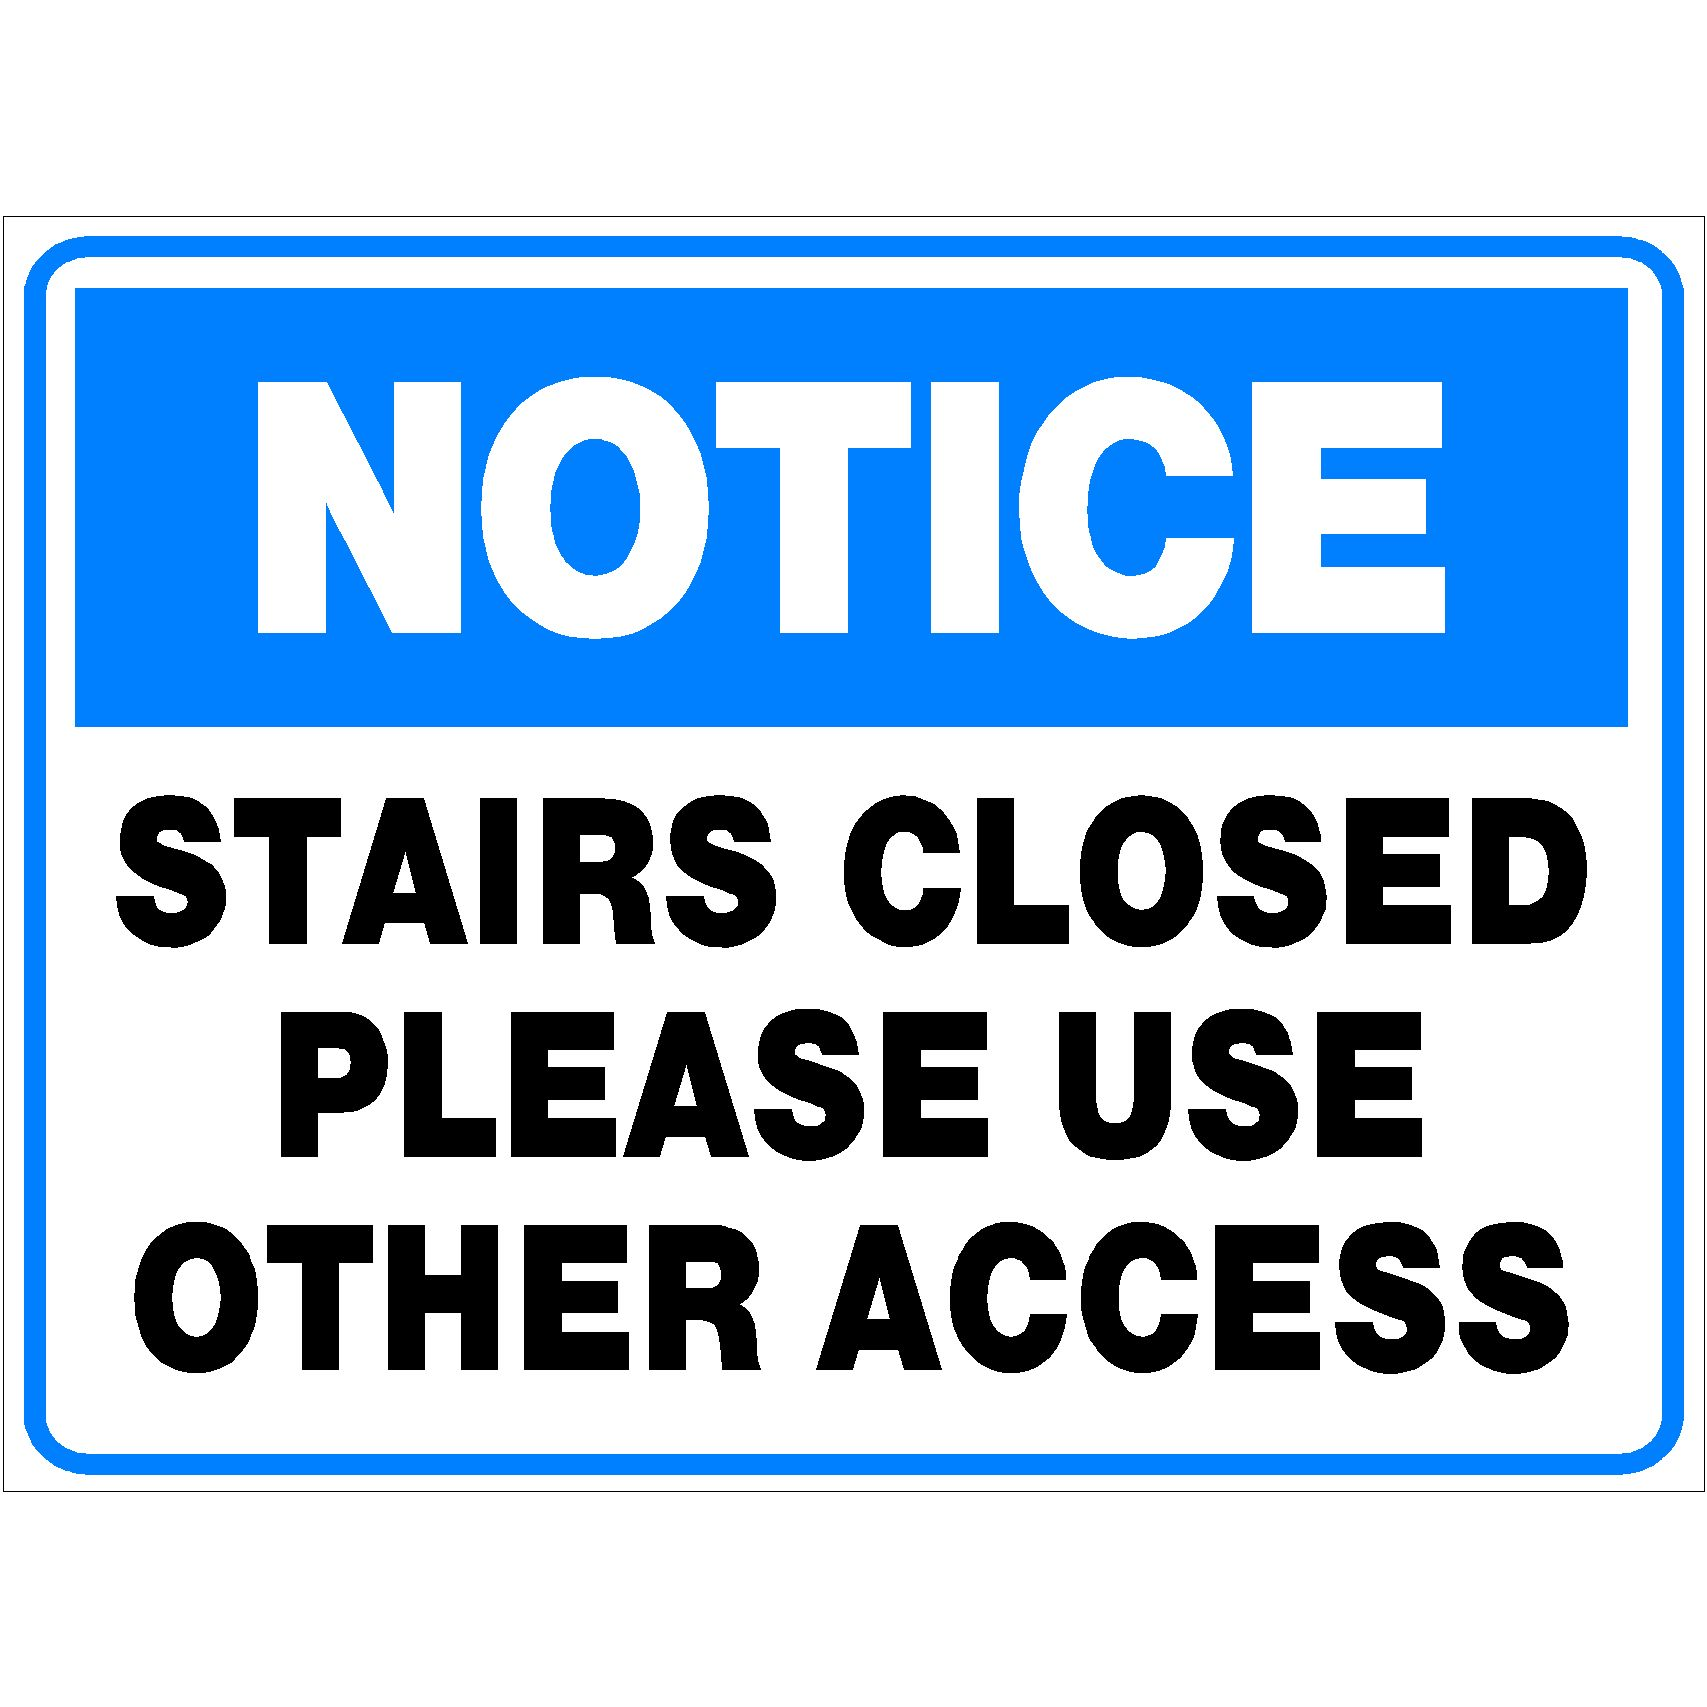 Notice Stairs Closed Please Use Other Access